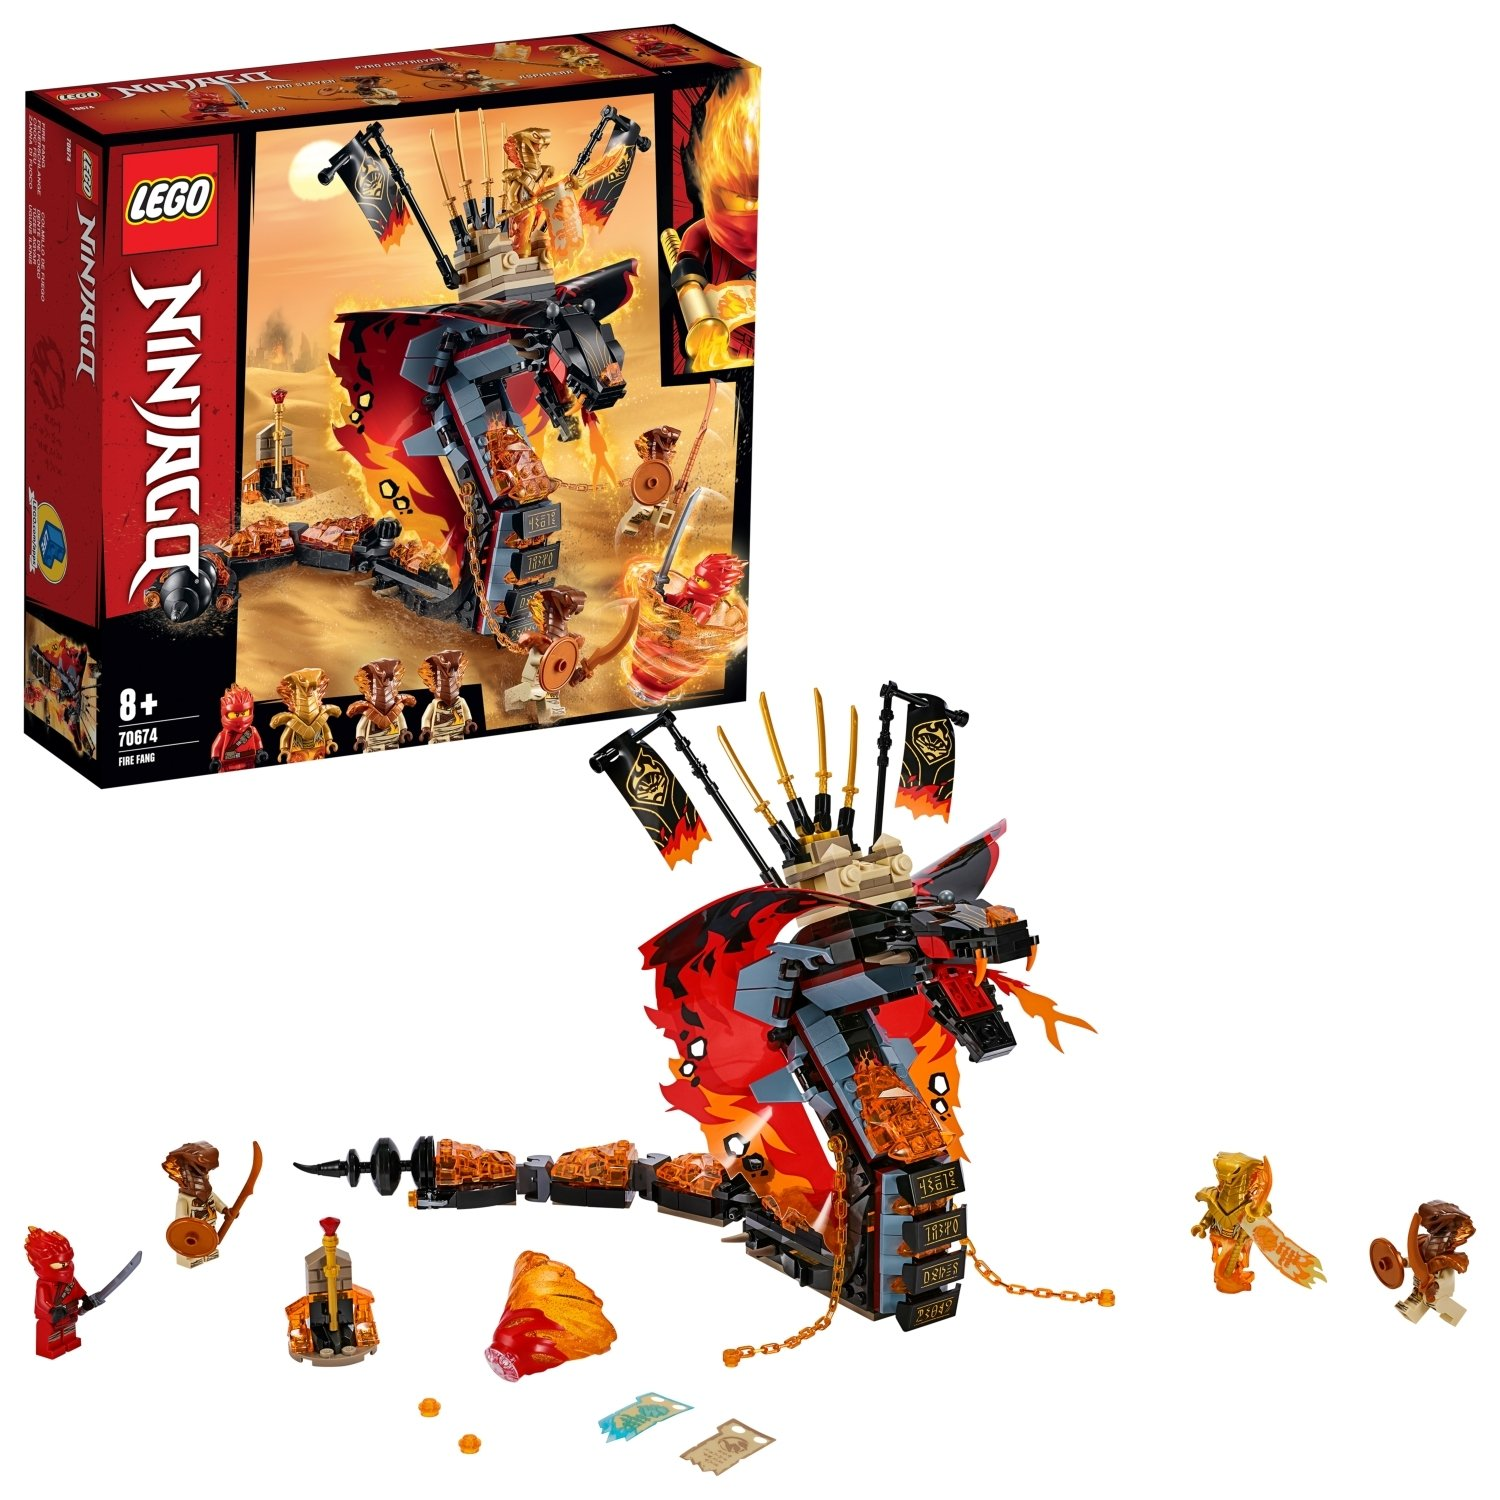 LEGO Ninjago Fire Fang Playset - 70674